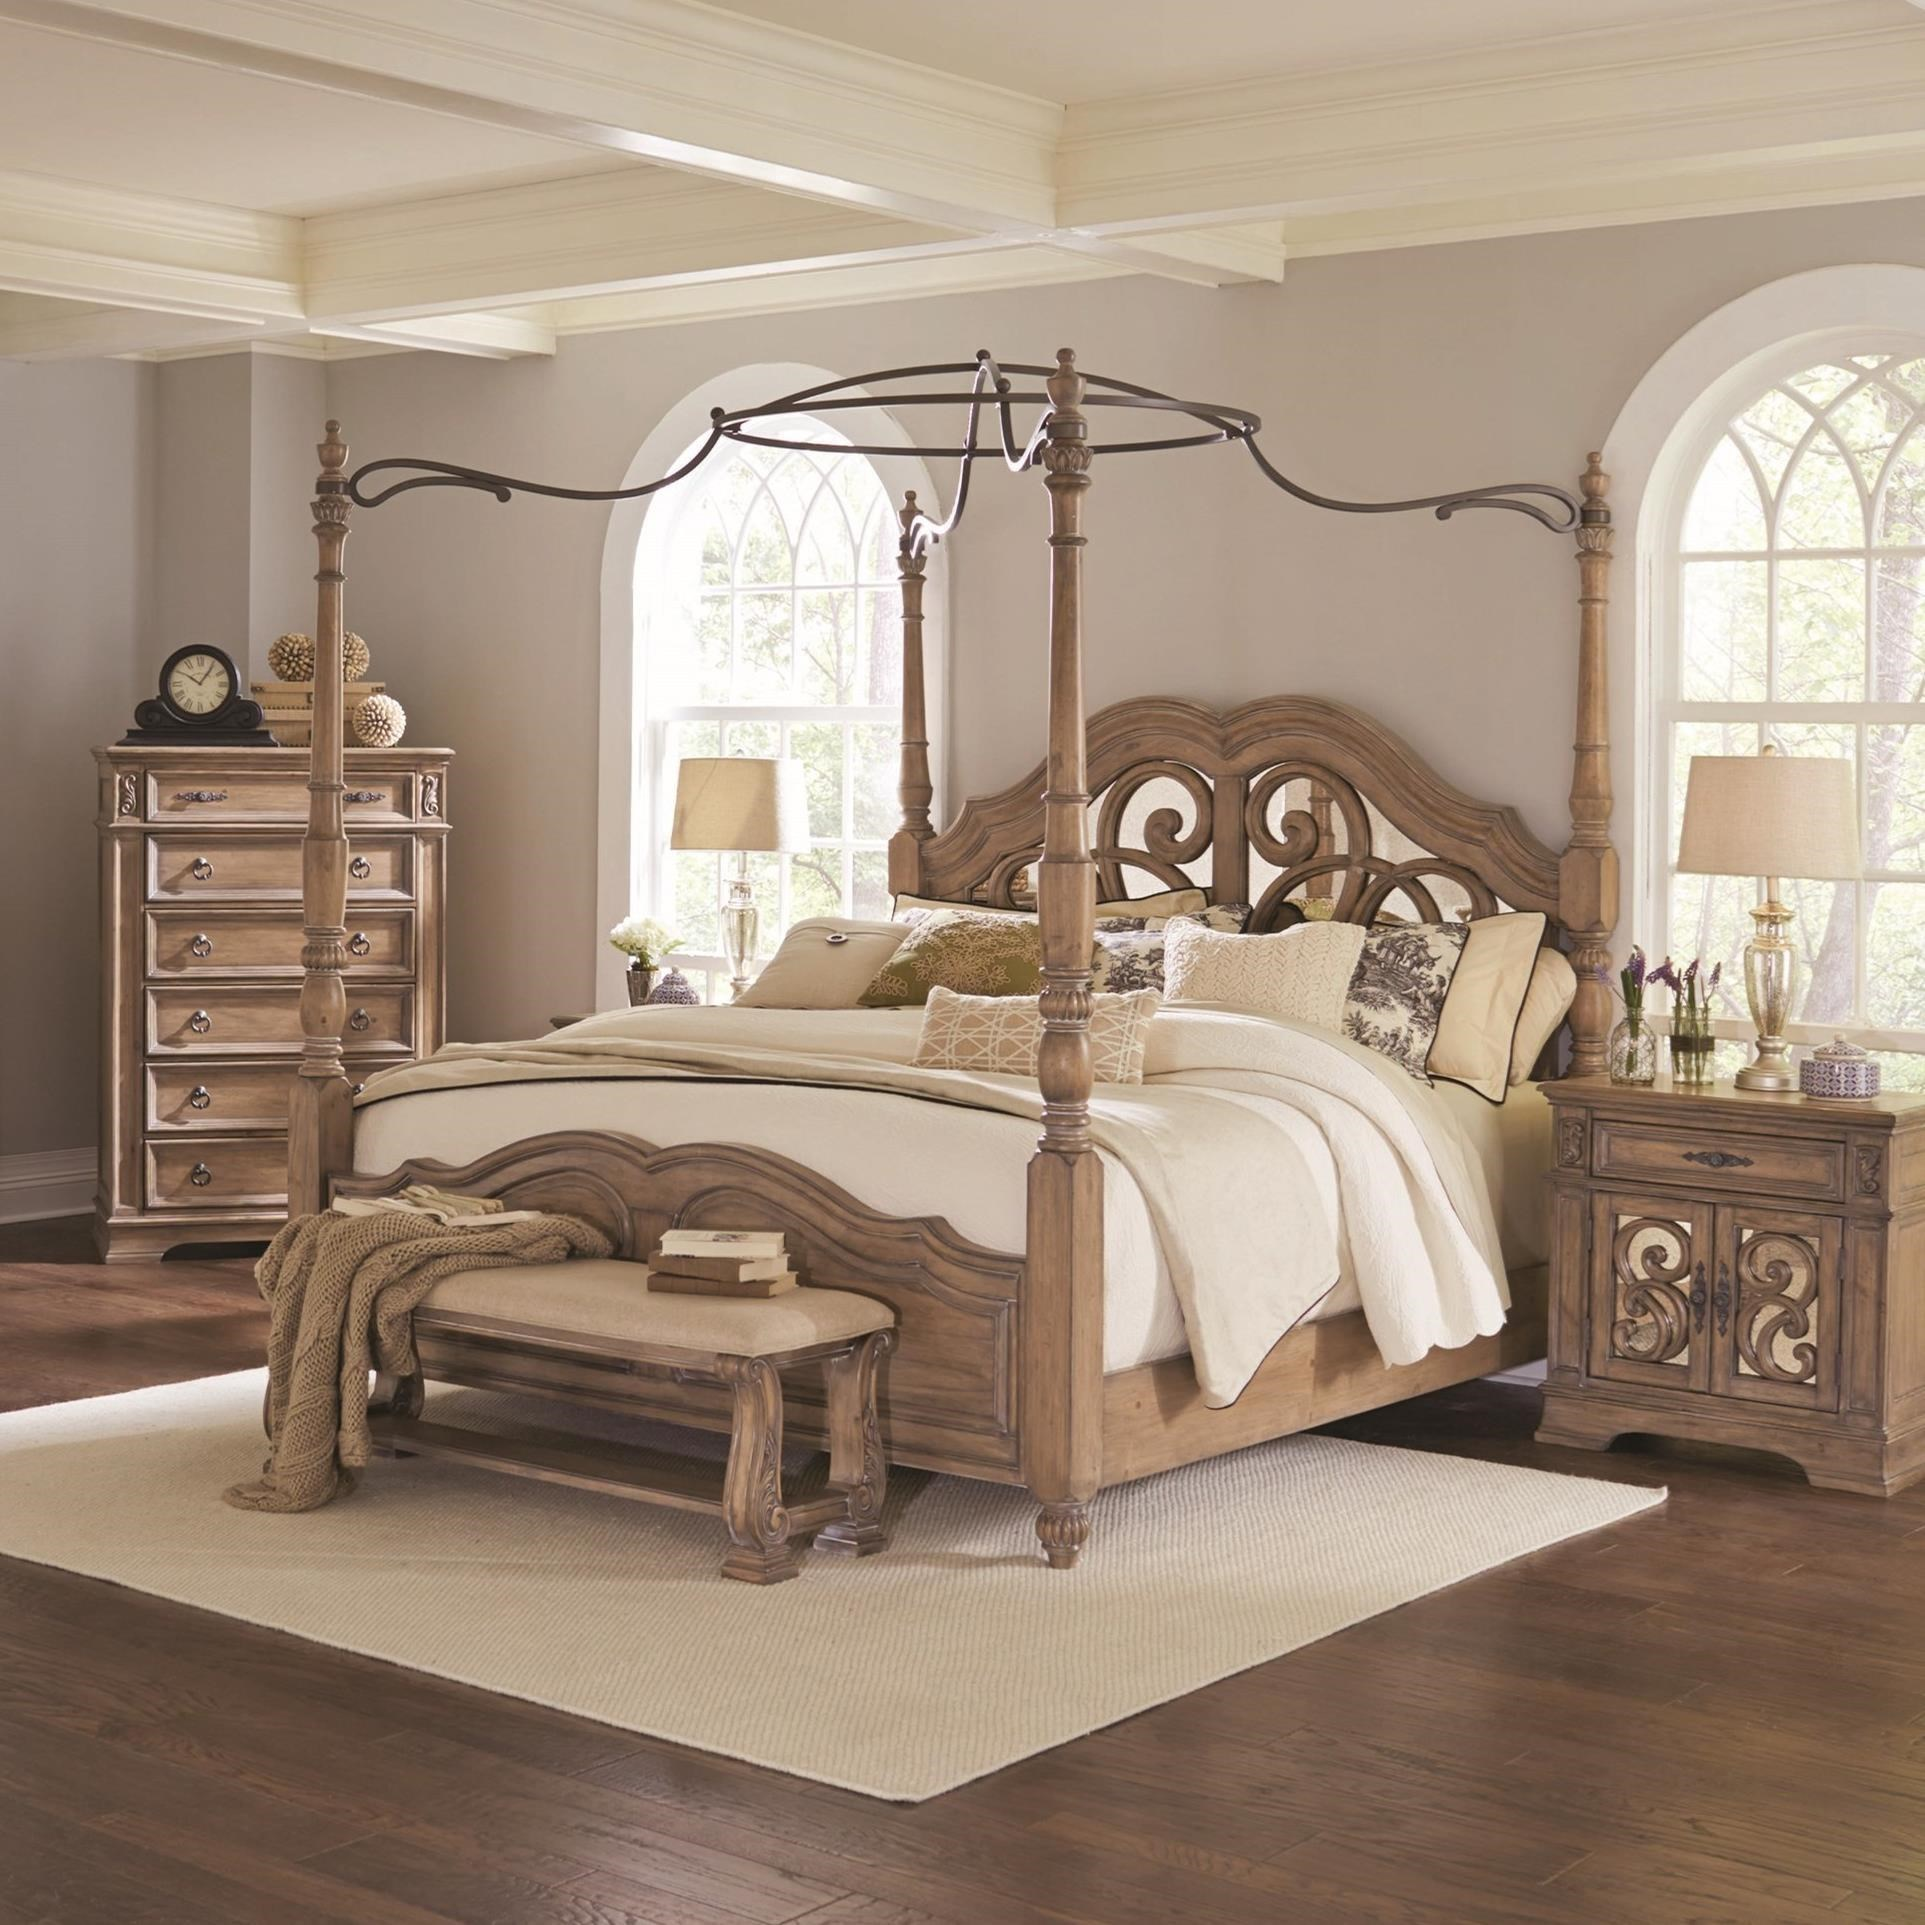 King Canopy Bed with Mirror Back Headboard by Coaster